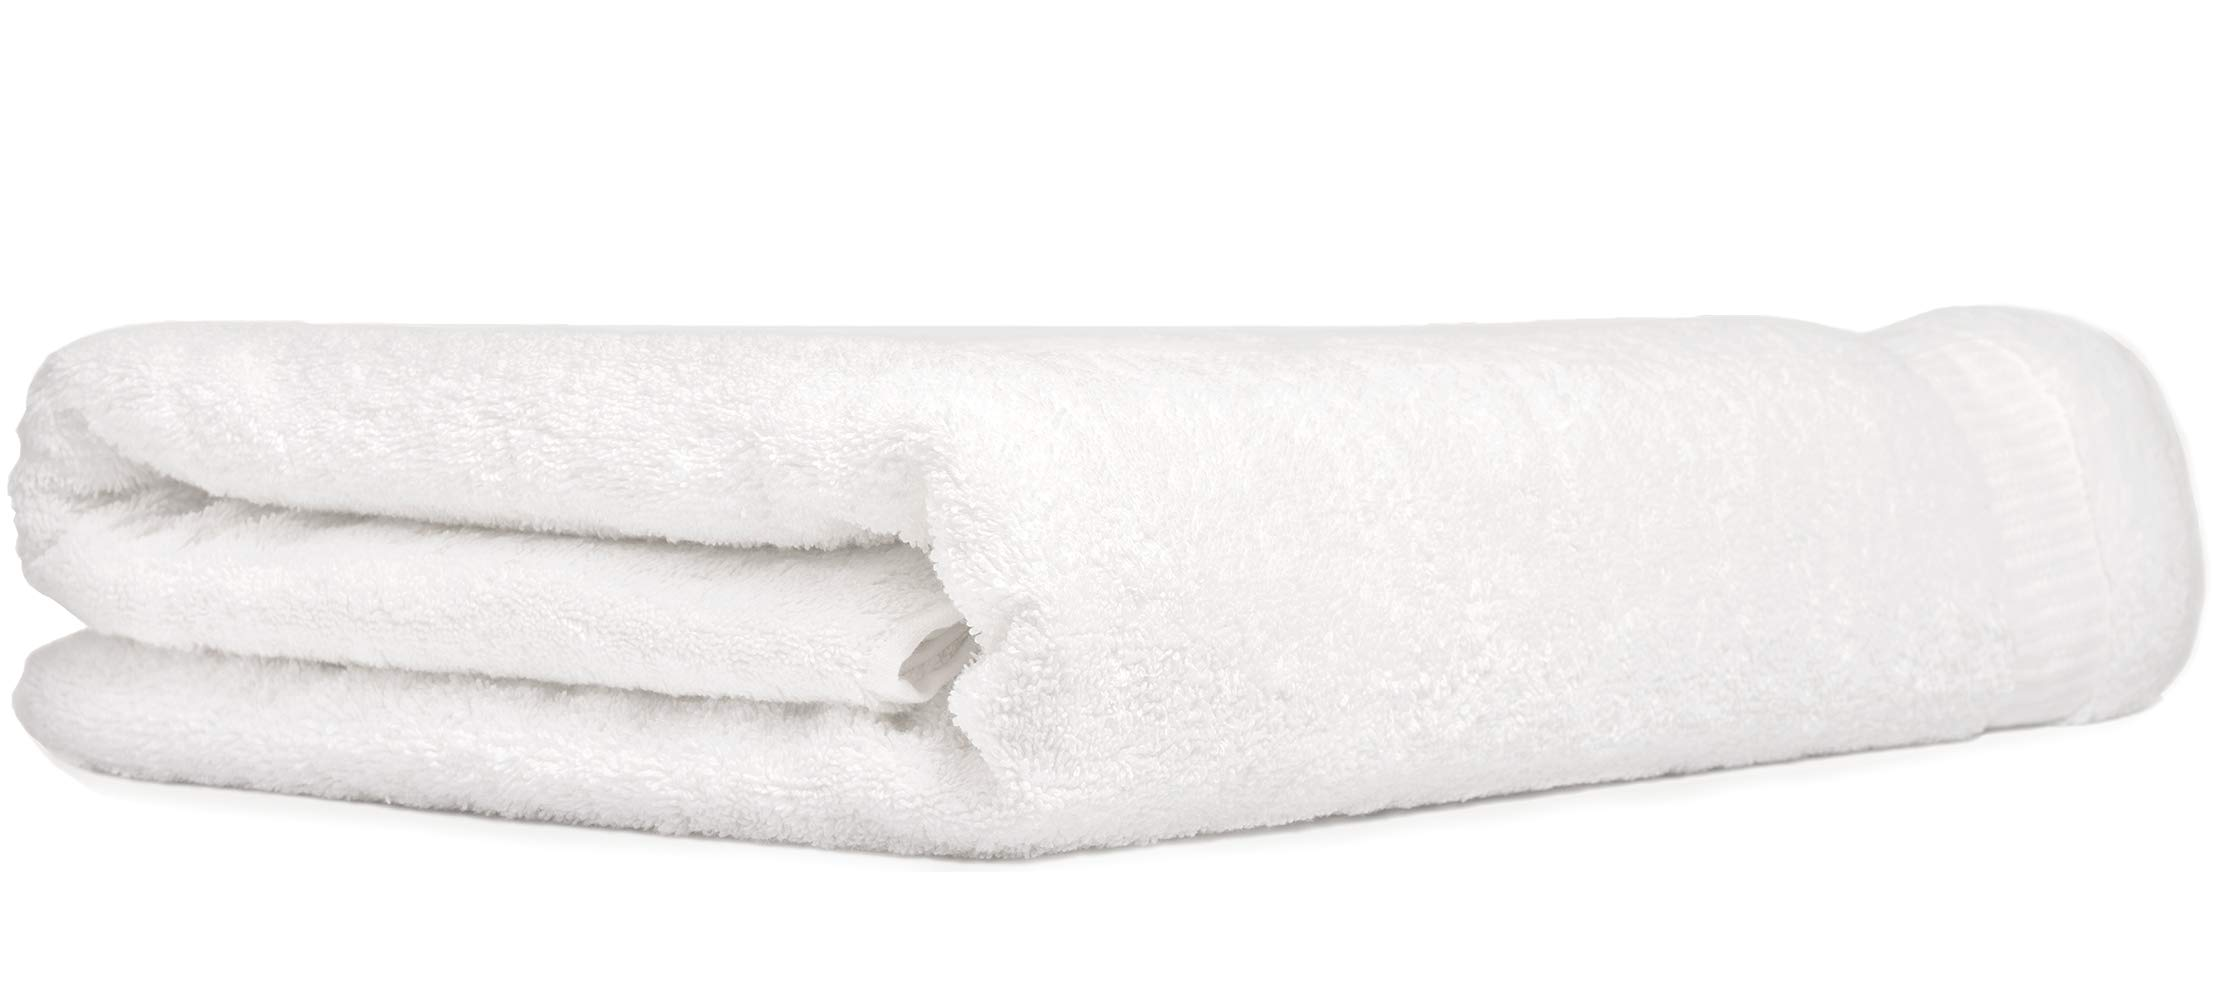 Luxury Oversized Jumbo Bath Sheets Extra Large 40X80 Inch White Bathroom Towel Premium Turkish Cotton Giant Absorbent Bath Sheet Multipurpose Use for Bath, Beach Gym and Spa, 1295 Gram by Class Cotton